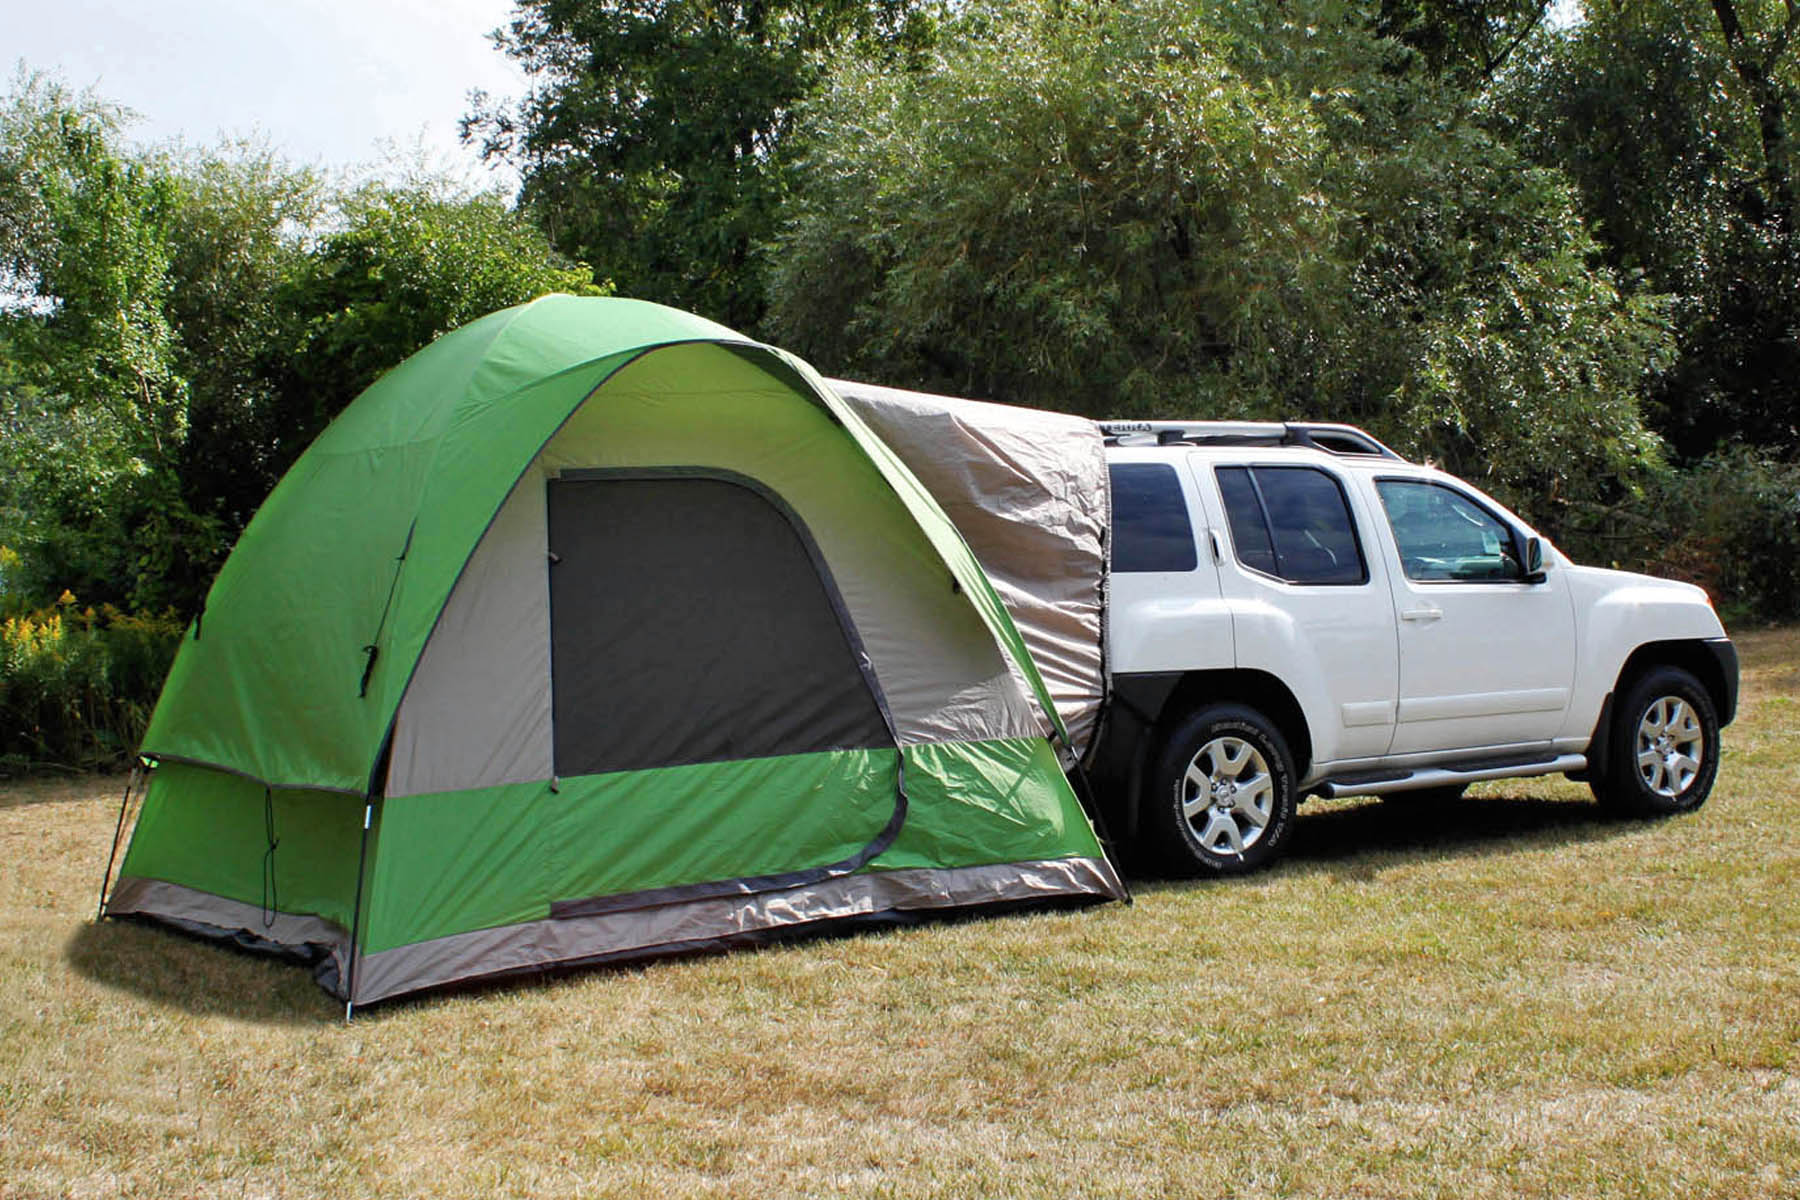 Napier Outdoors Backroadz #13100 SUV Tent & Outdoors Backroadz #13100 SUV Tent